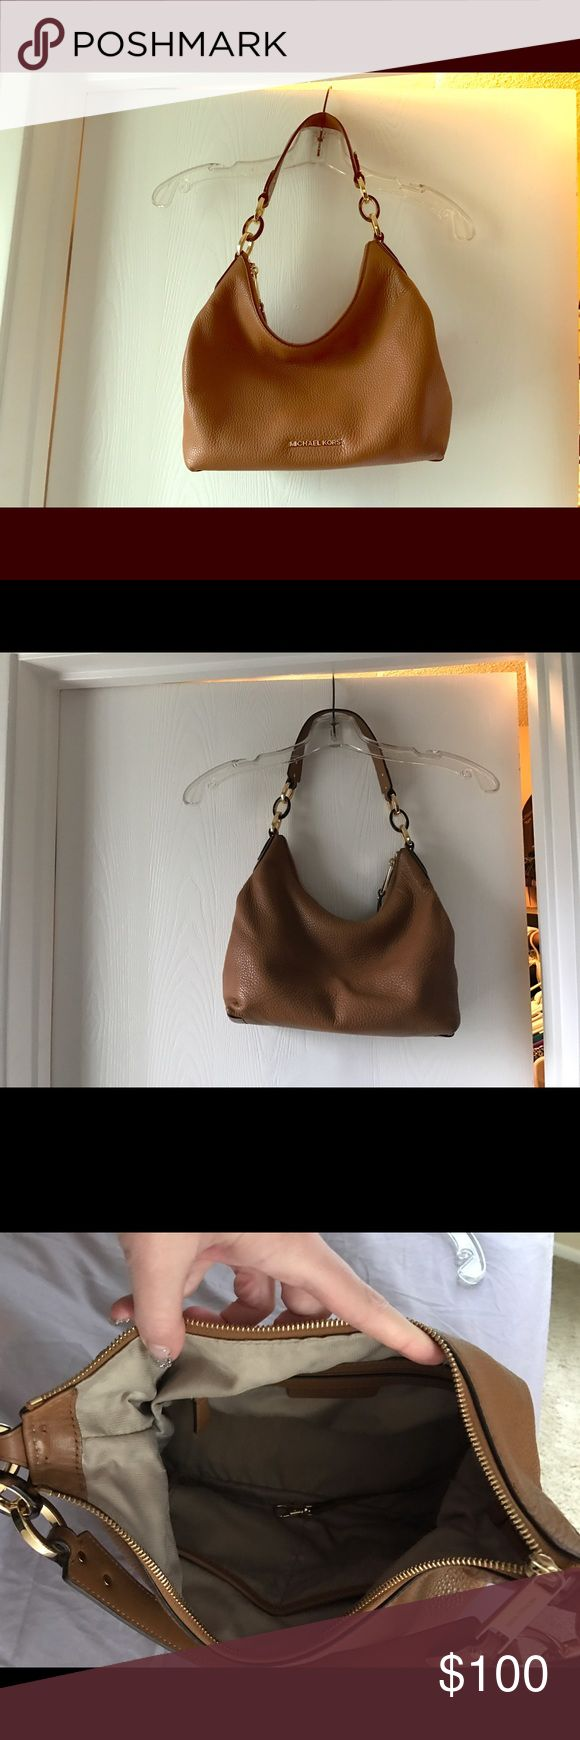 Michael Kors purse Beautiful MK leather purse! This color is a must have staple for any wardrobe. The purse is gently used but in excellent condition. No defects. Bags Satchels